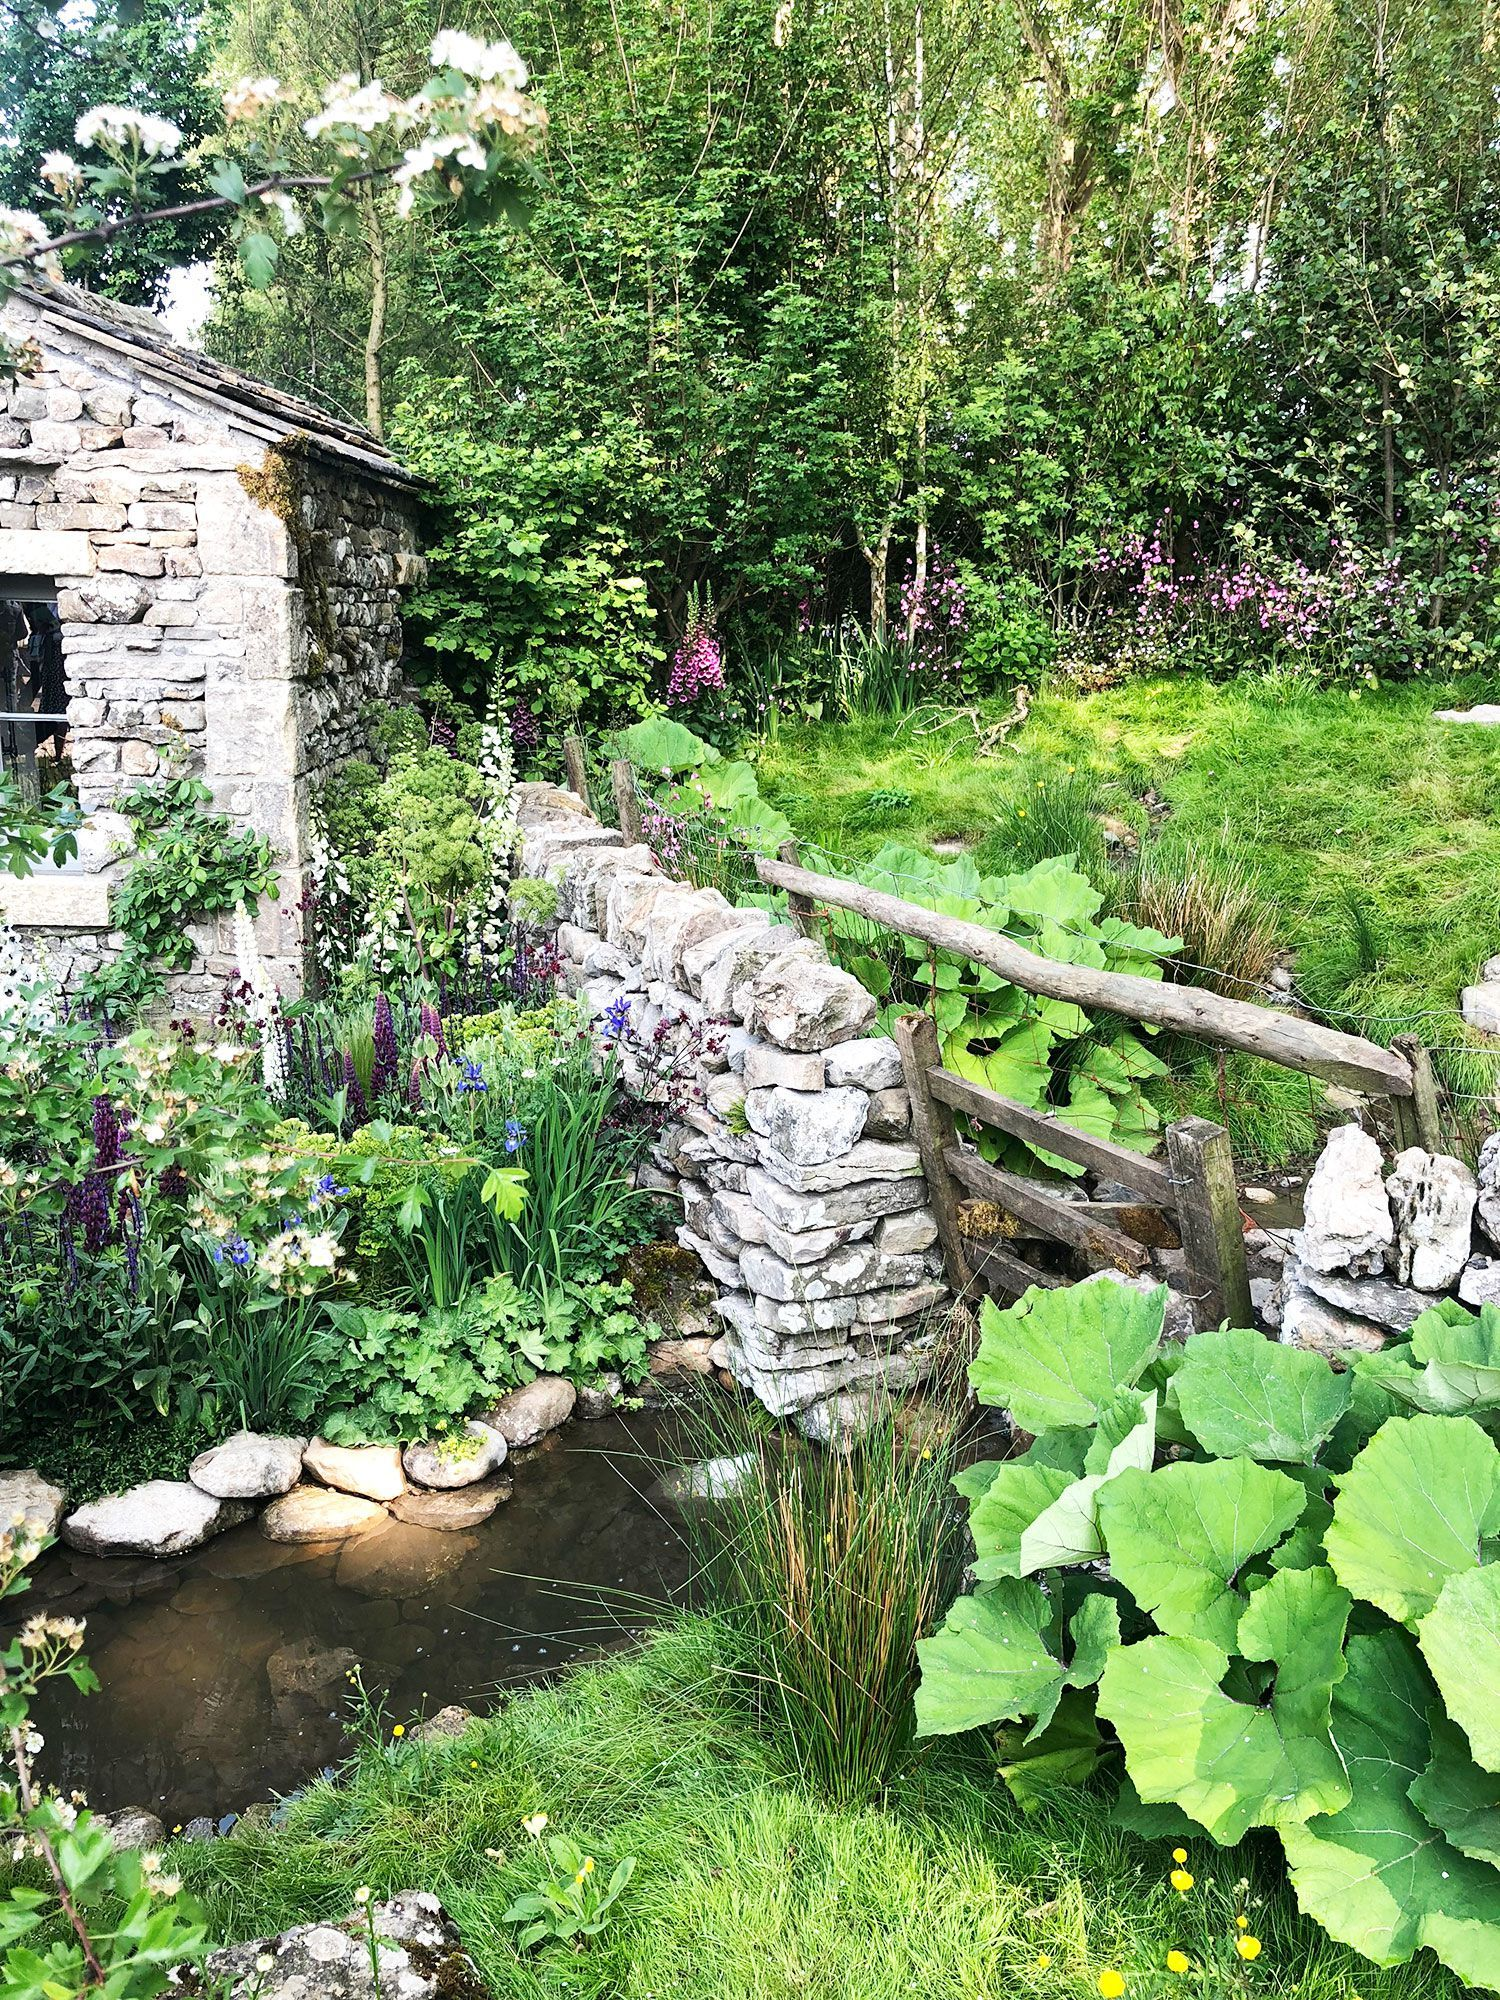 the winners of the chelsea flower show people's choice awards have